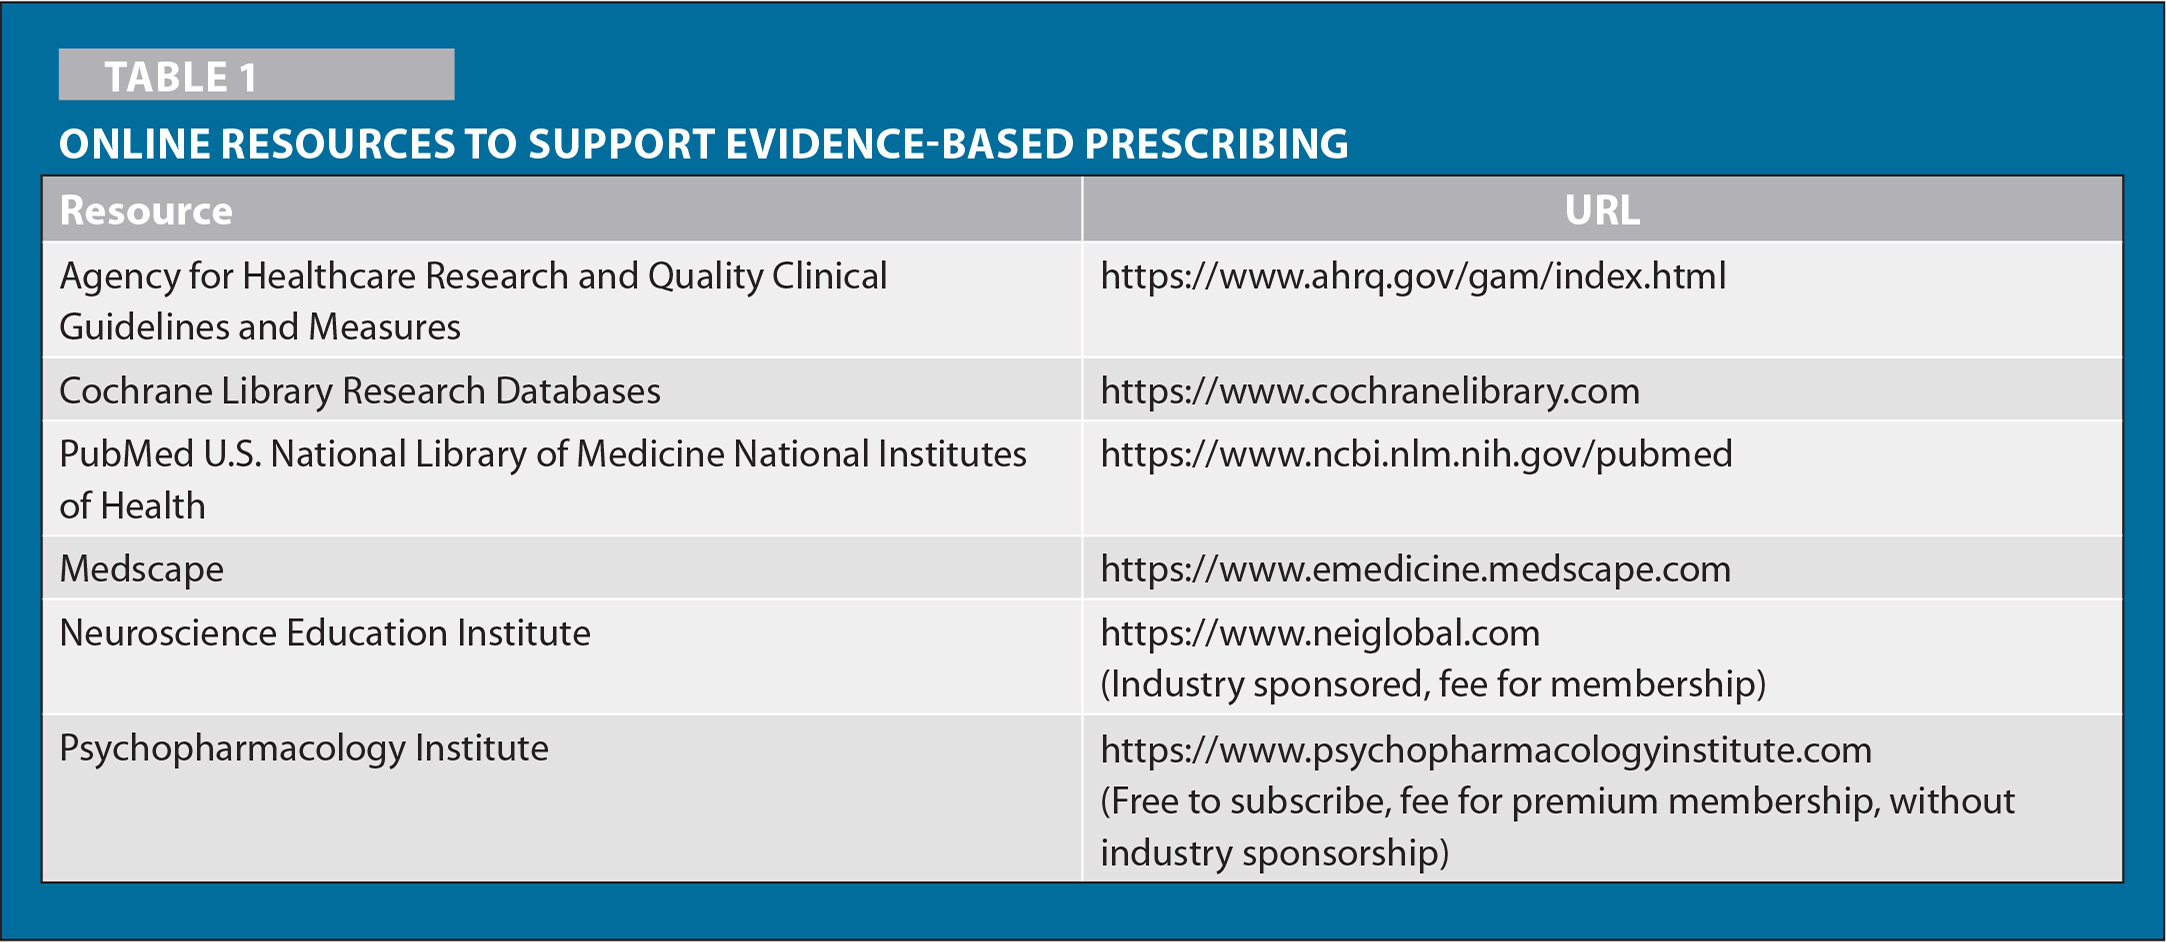 Online Resources to Support Evidence-Based Prescribing